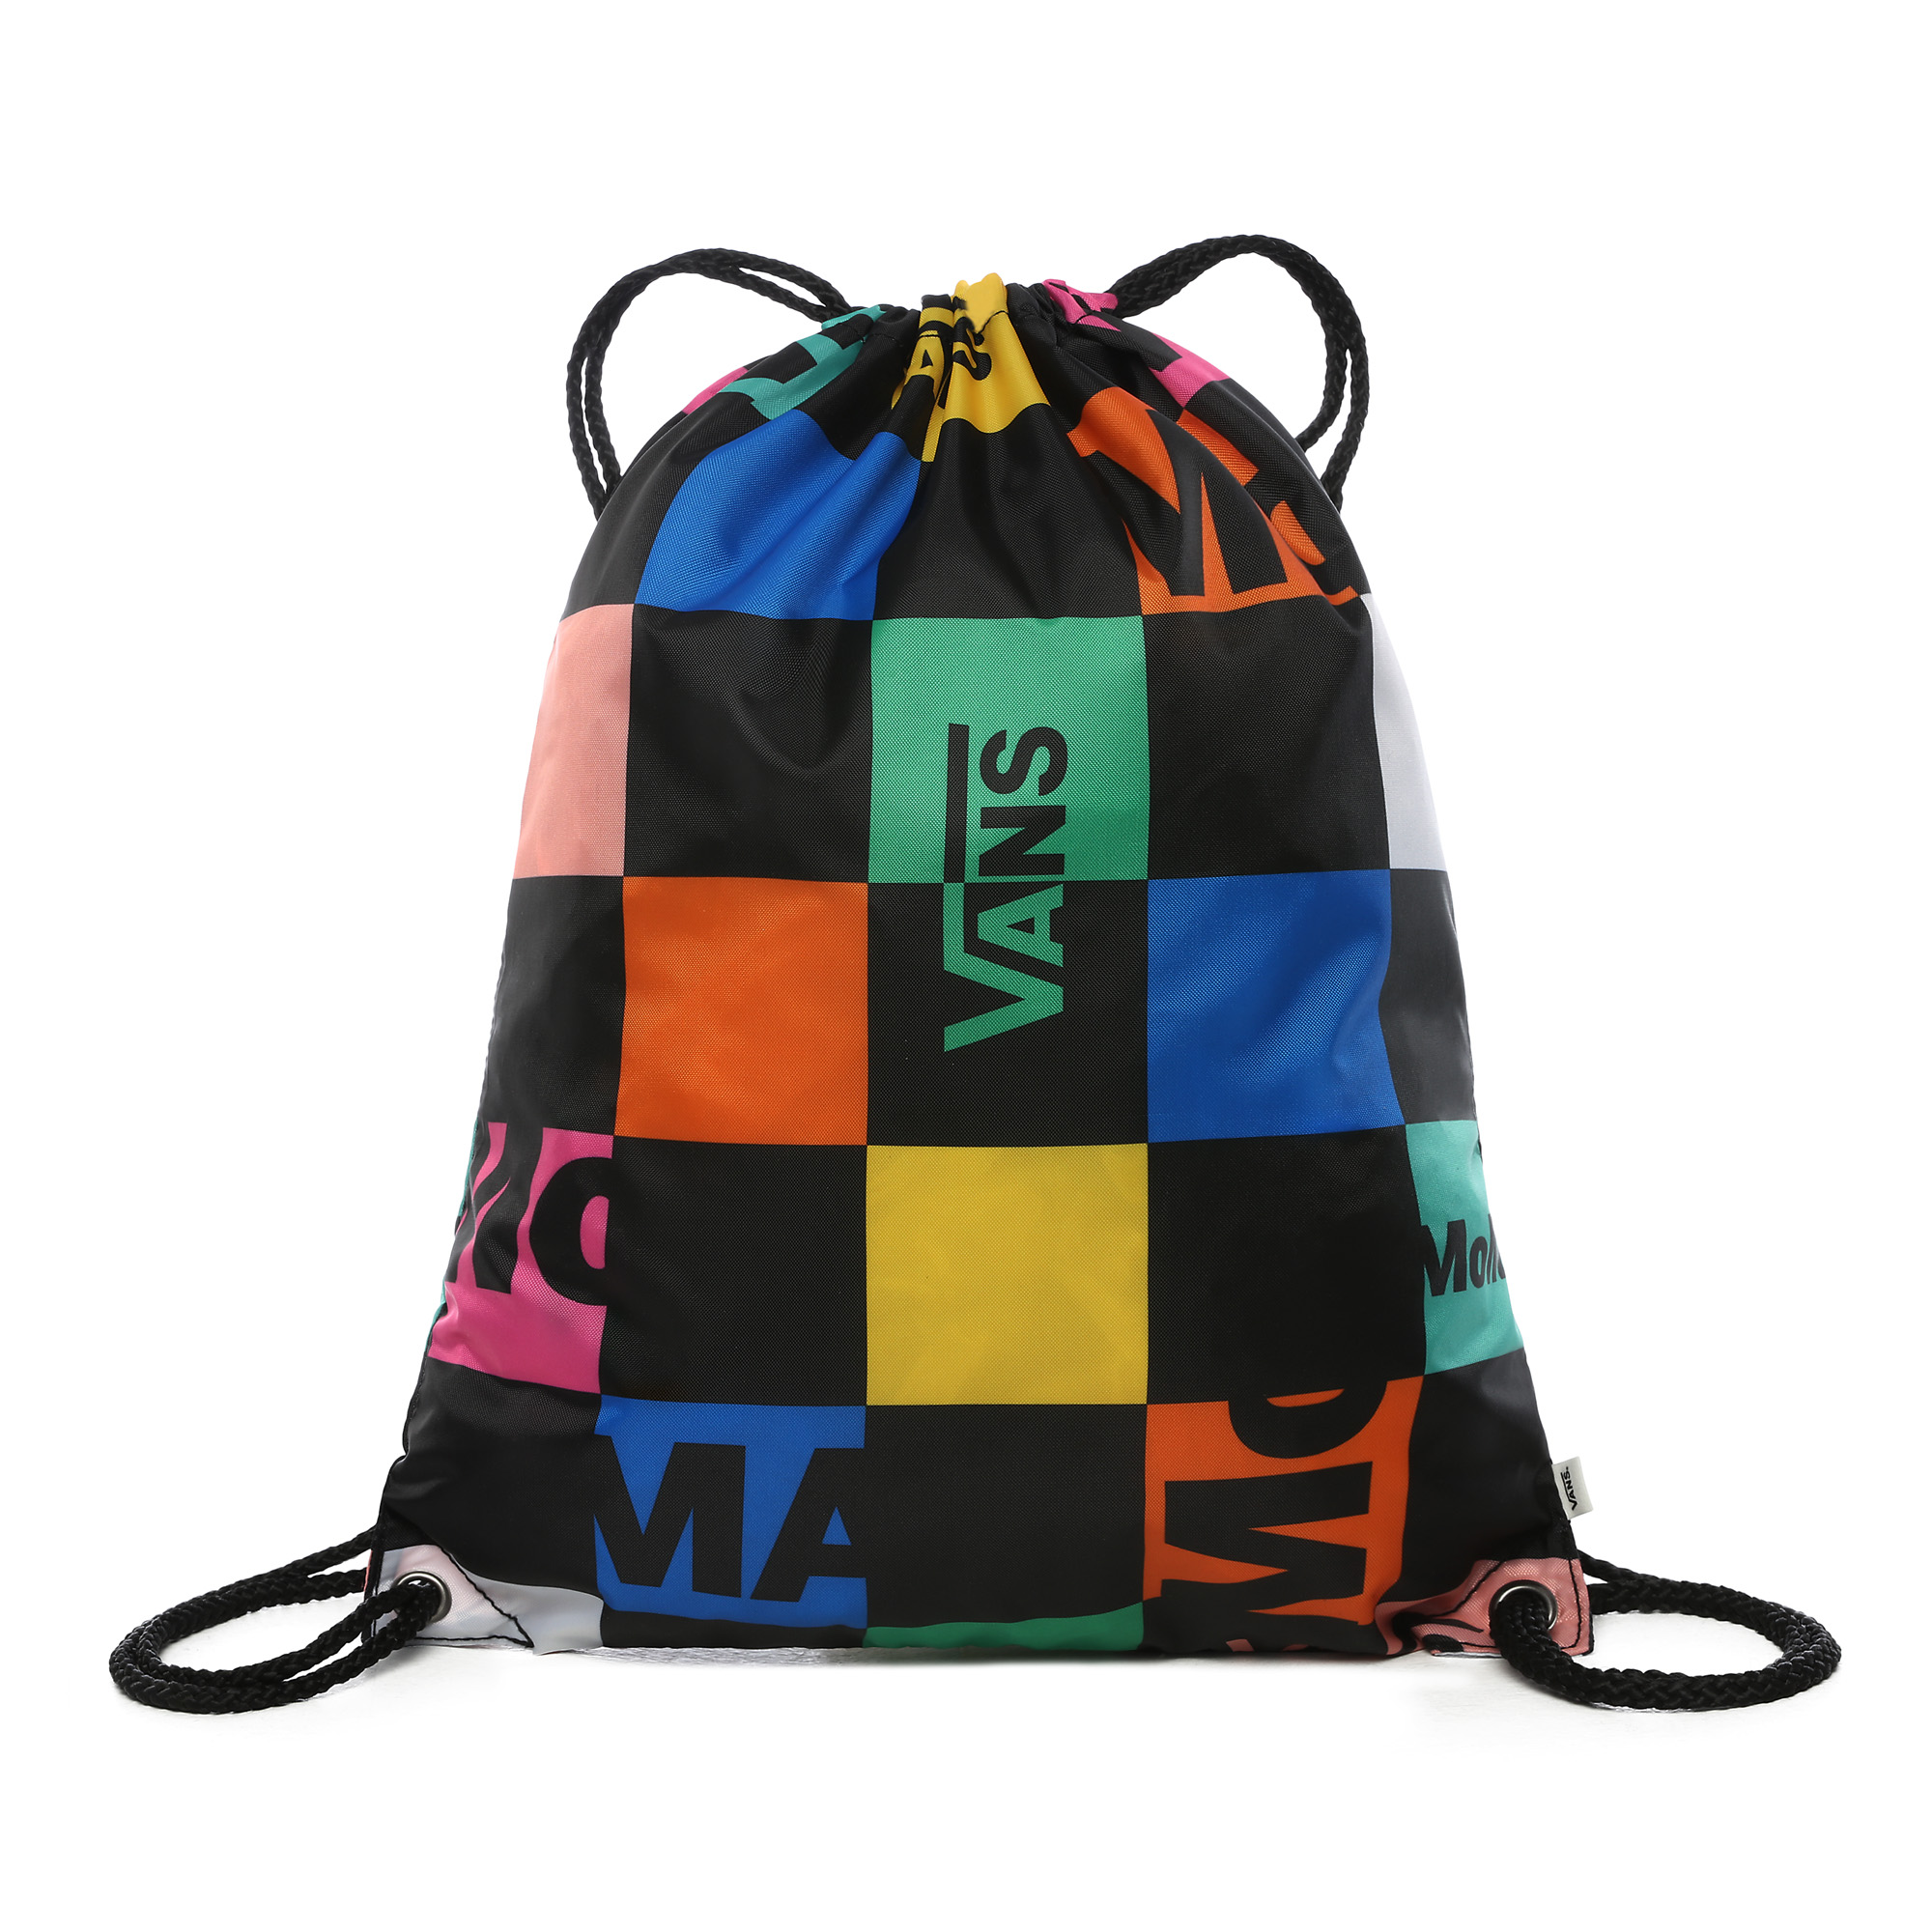 Сумка Vans X MoMA Bench Bag